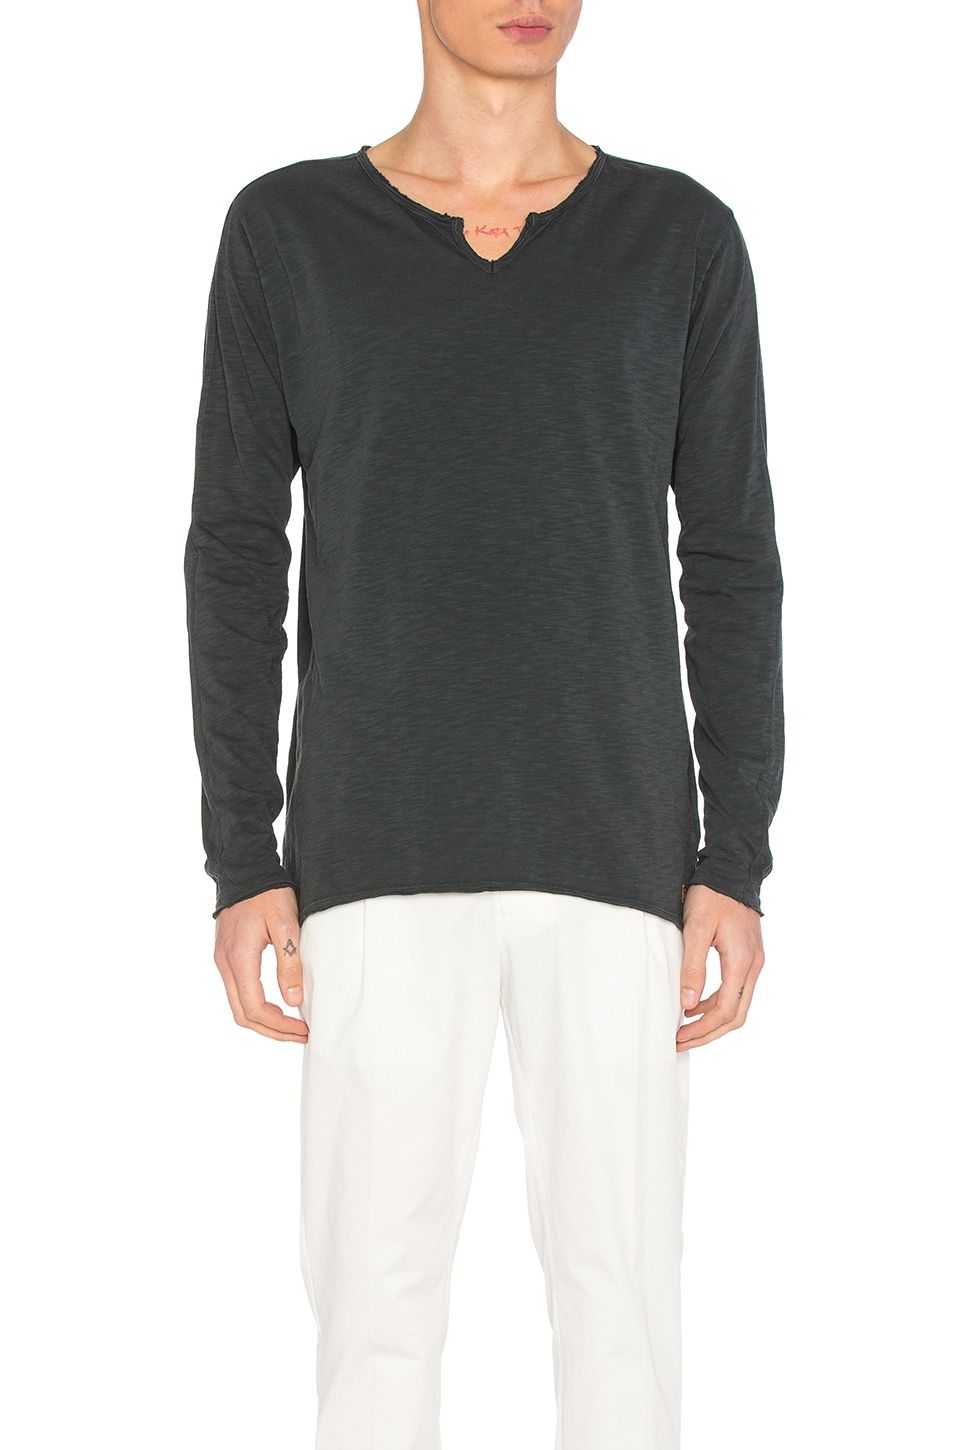 Long Sleeve Tee by Scotch & Soda